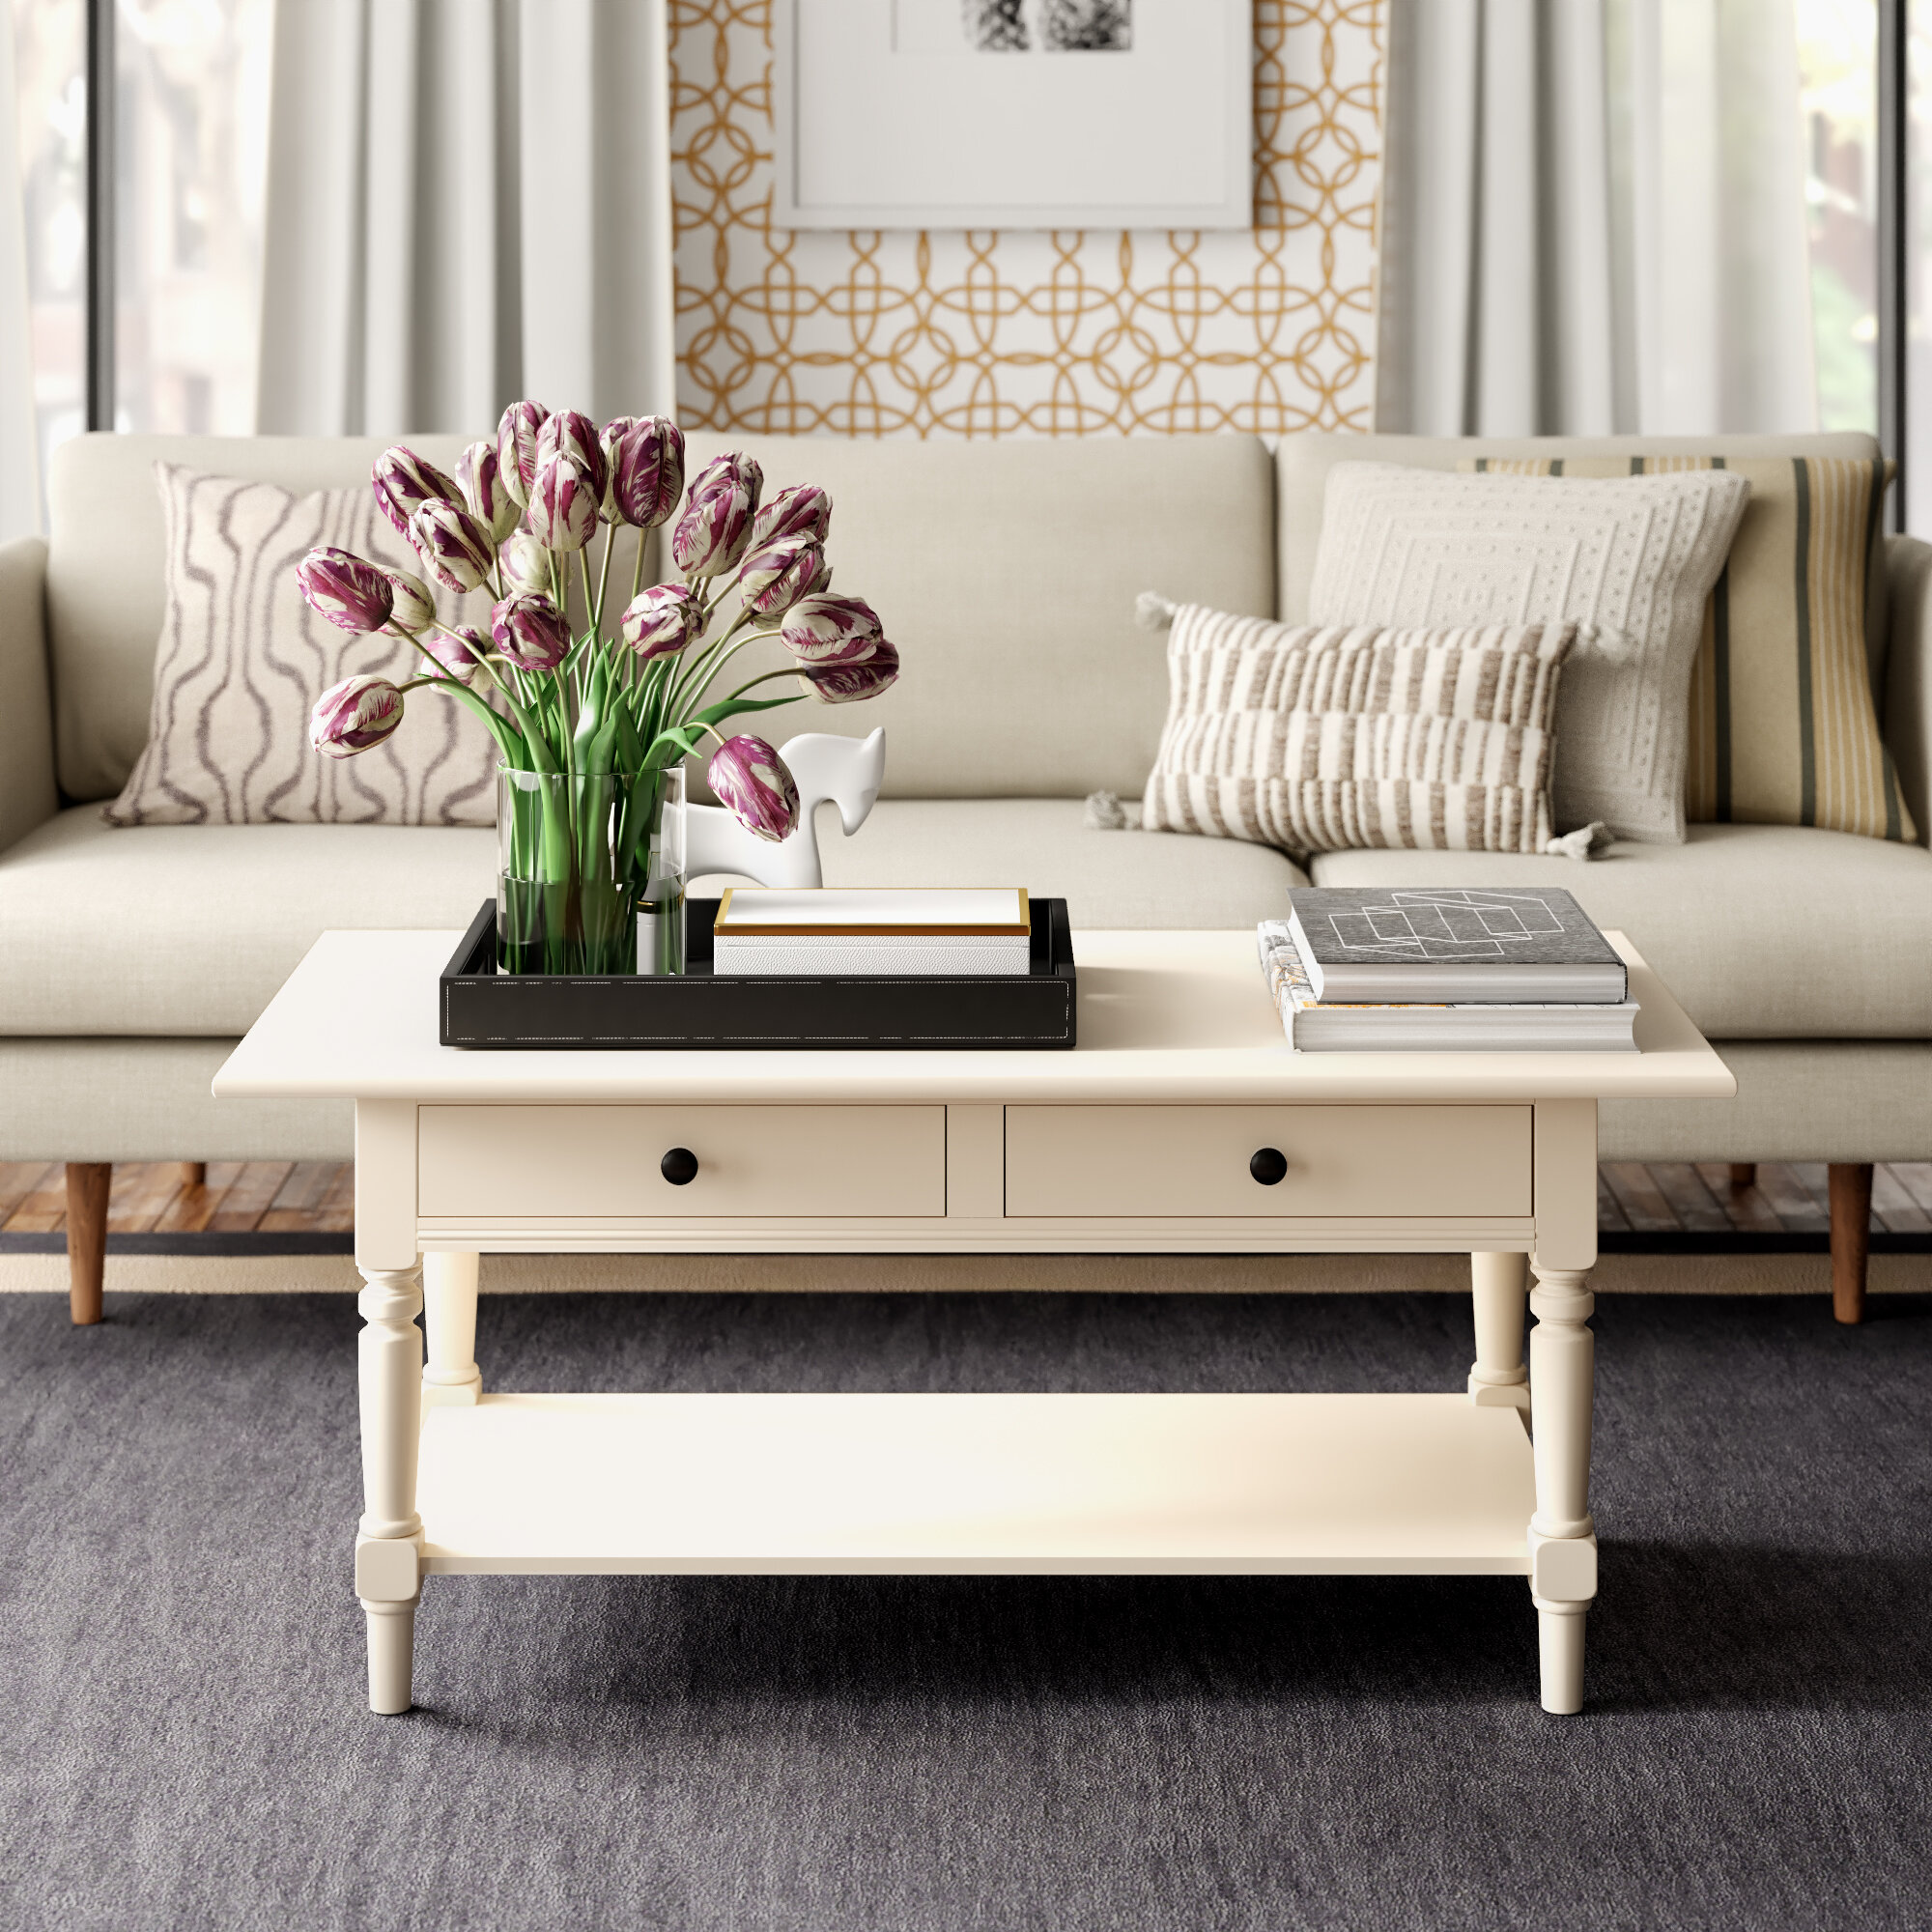 - Clive Coffee Table With Storage & Reviews Joss & Main